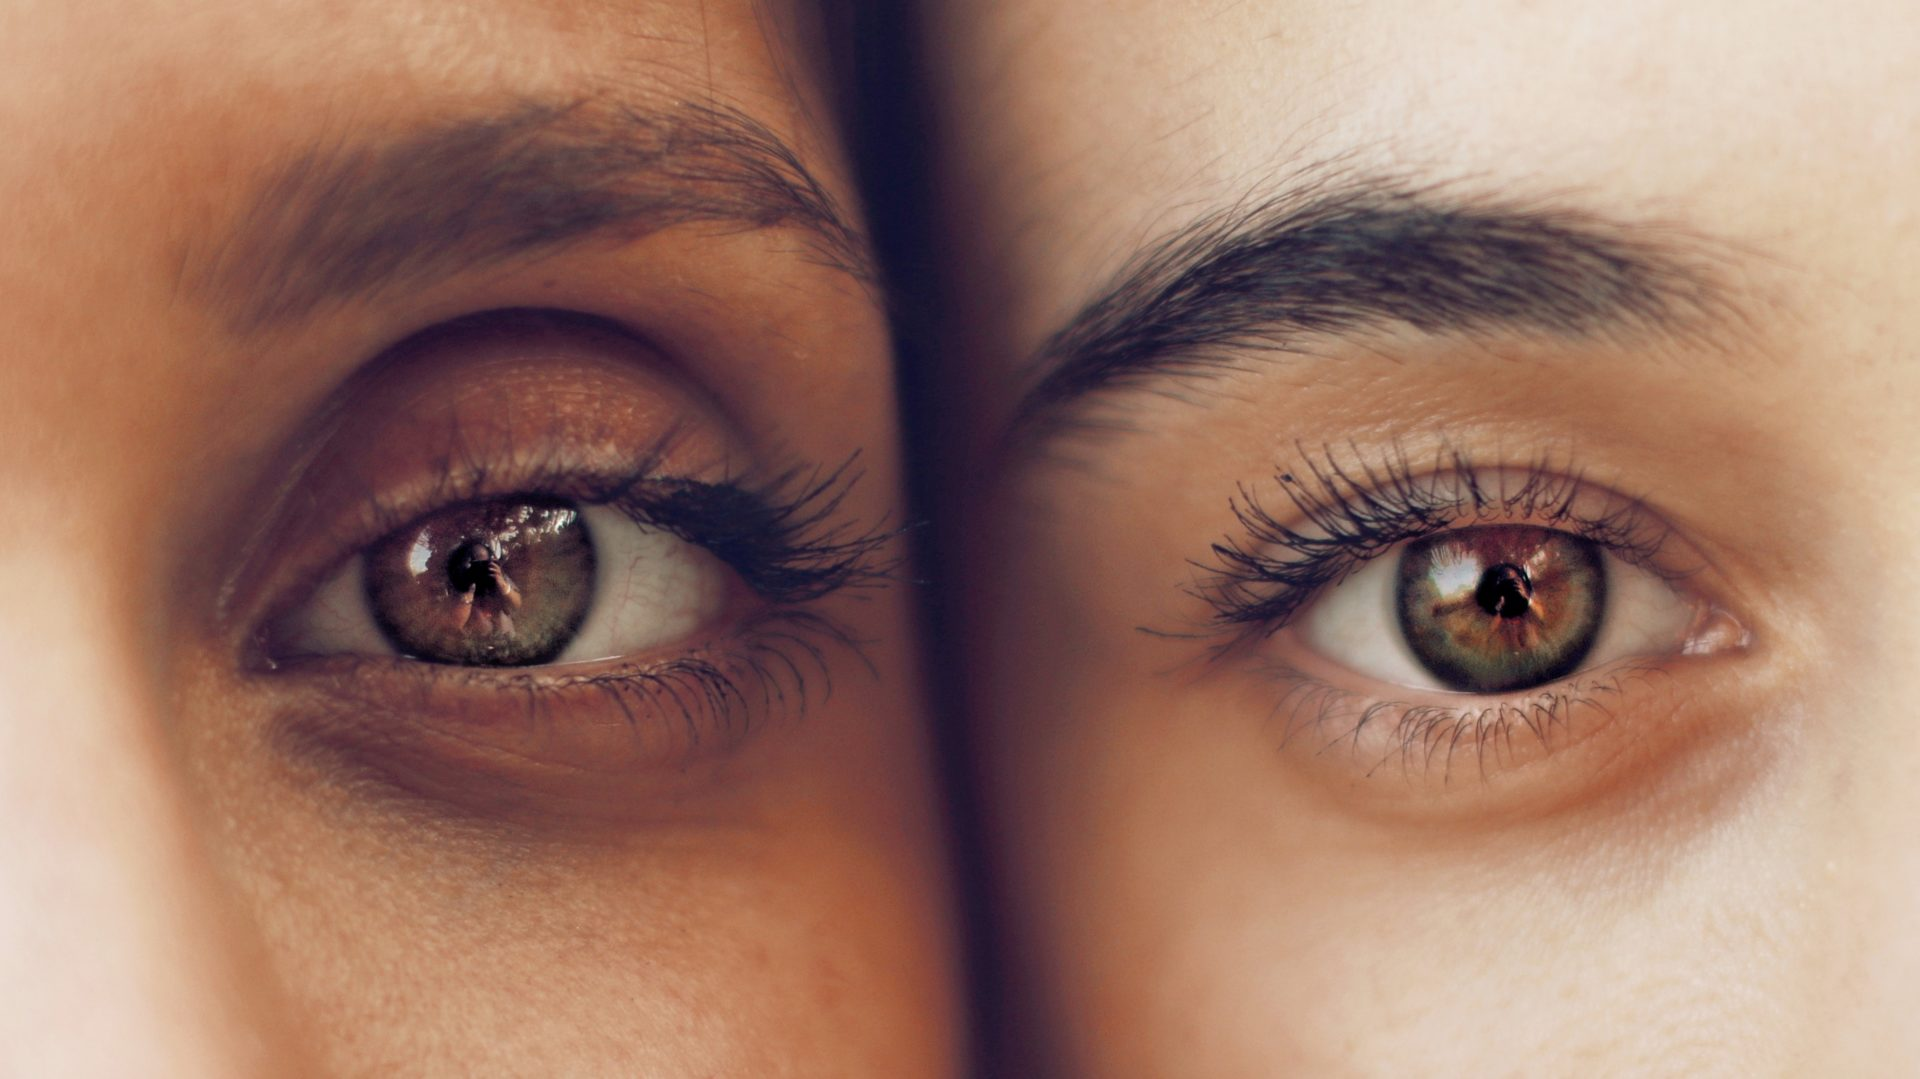 Two Eyes from different friends